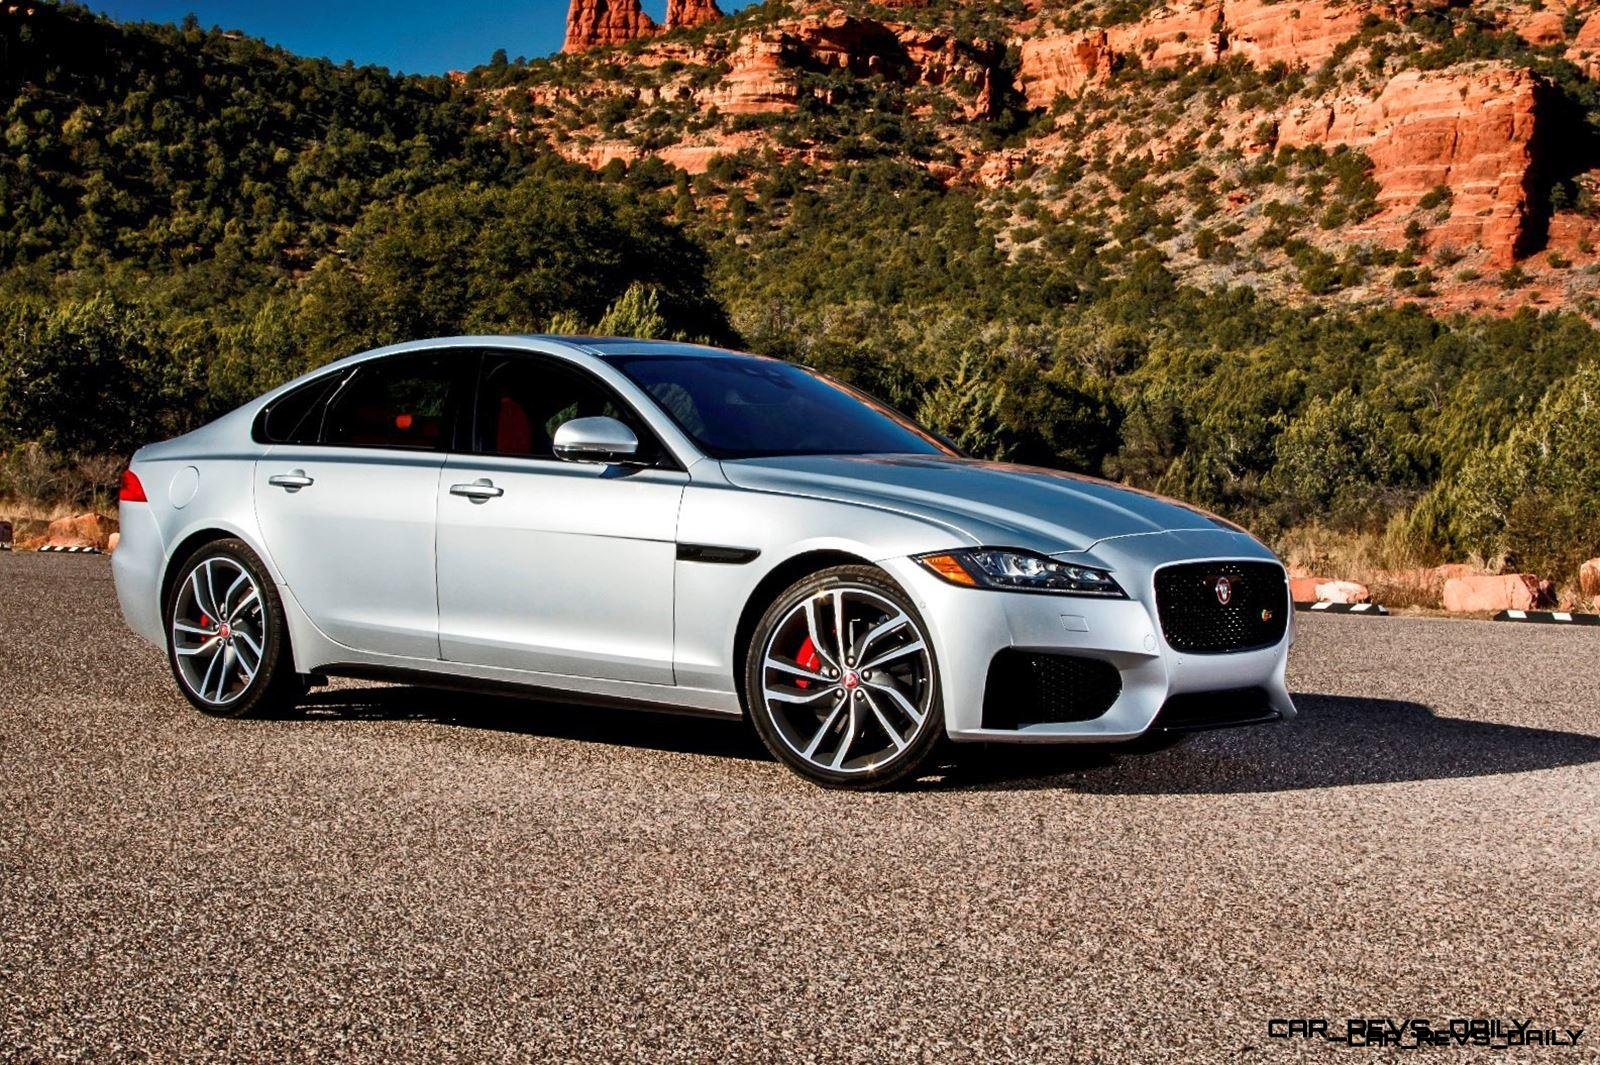 2017 Jaguar XF-S V6 - USA Media Drive 58